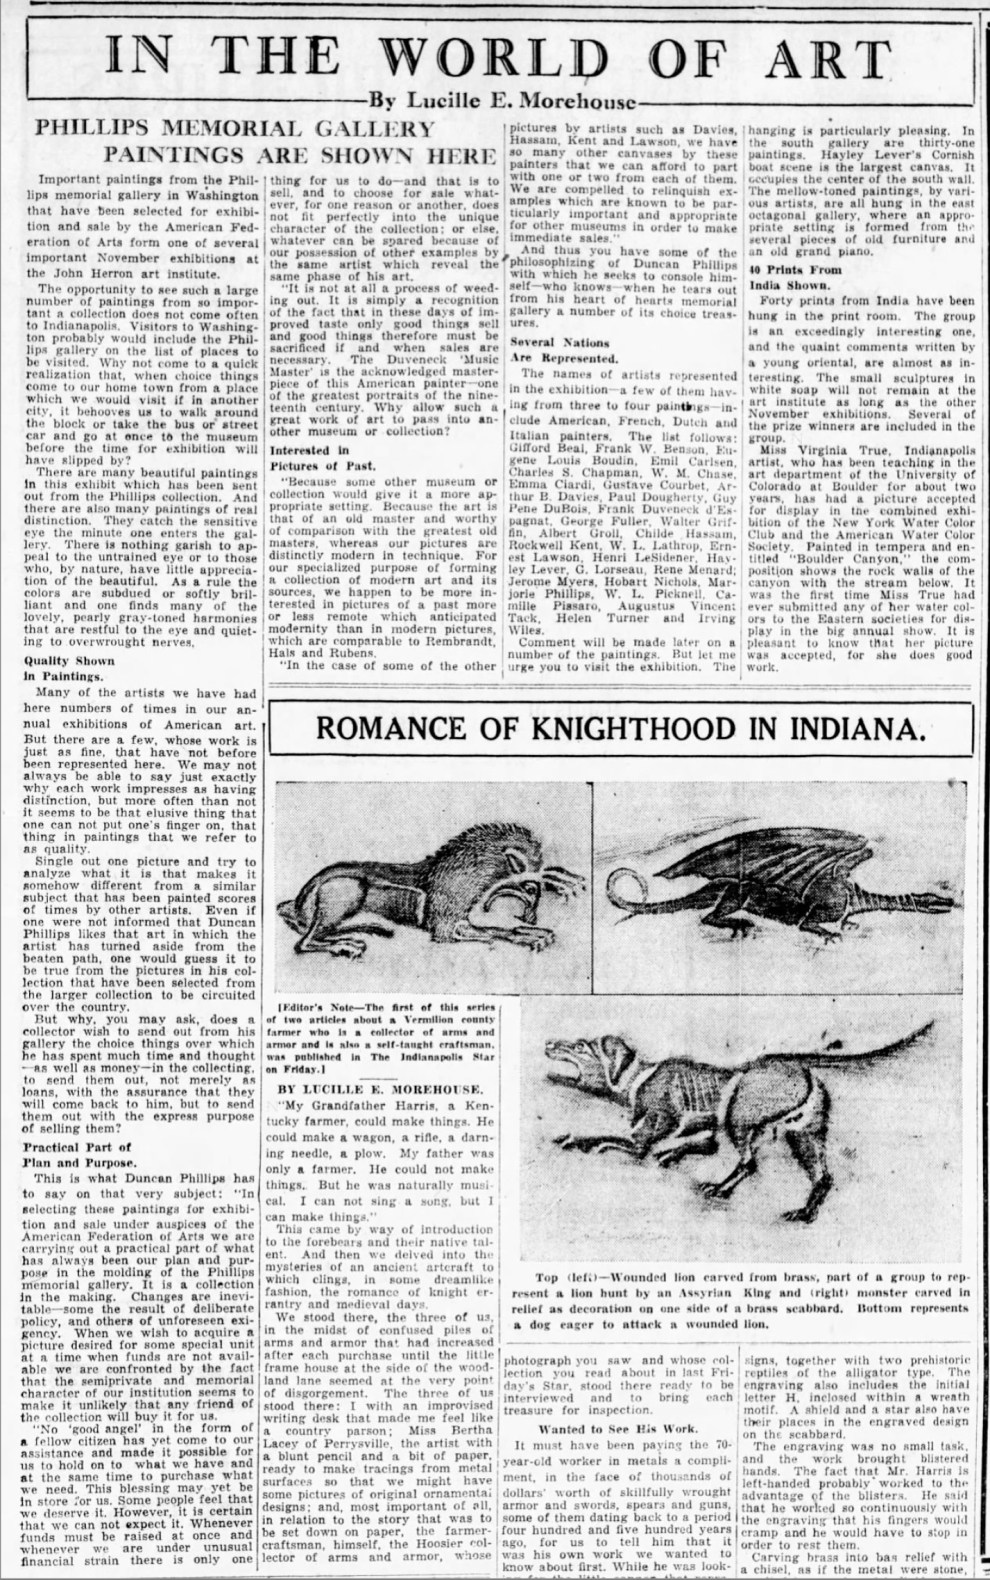 "The Indianapolis Star, Indianapolis, IN, ""In the world of art : Phillips memorial gallery paintings are shown here"" by Lucille E. Morehouse, Sunday, November 9, 1930, page 53, not illustrated."